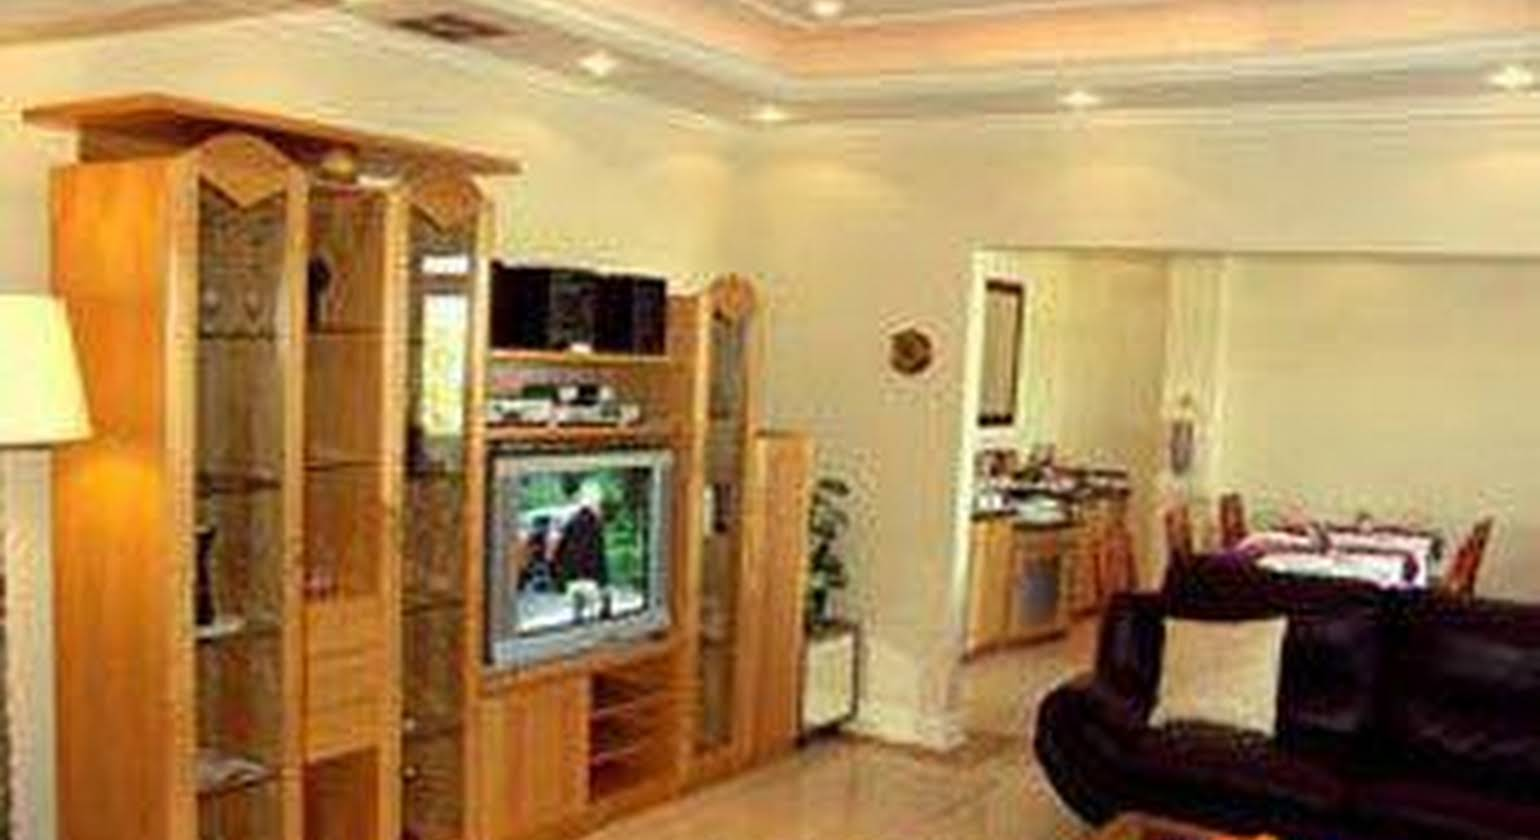 The Sandringham Bed and Breakfast